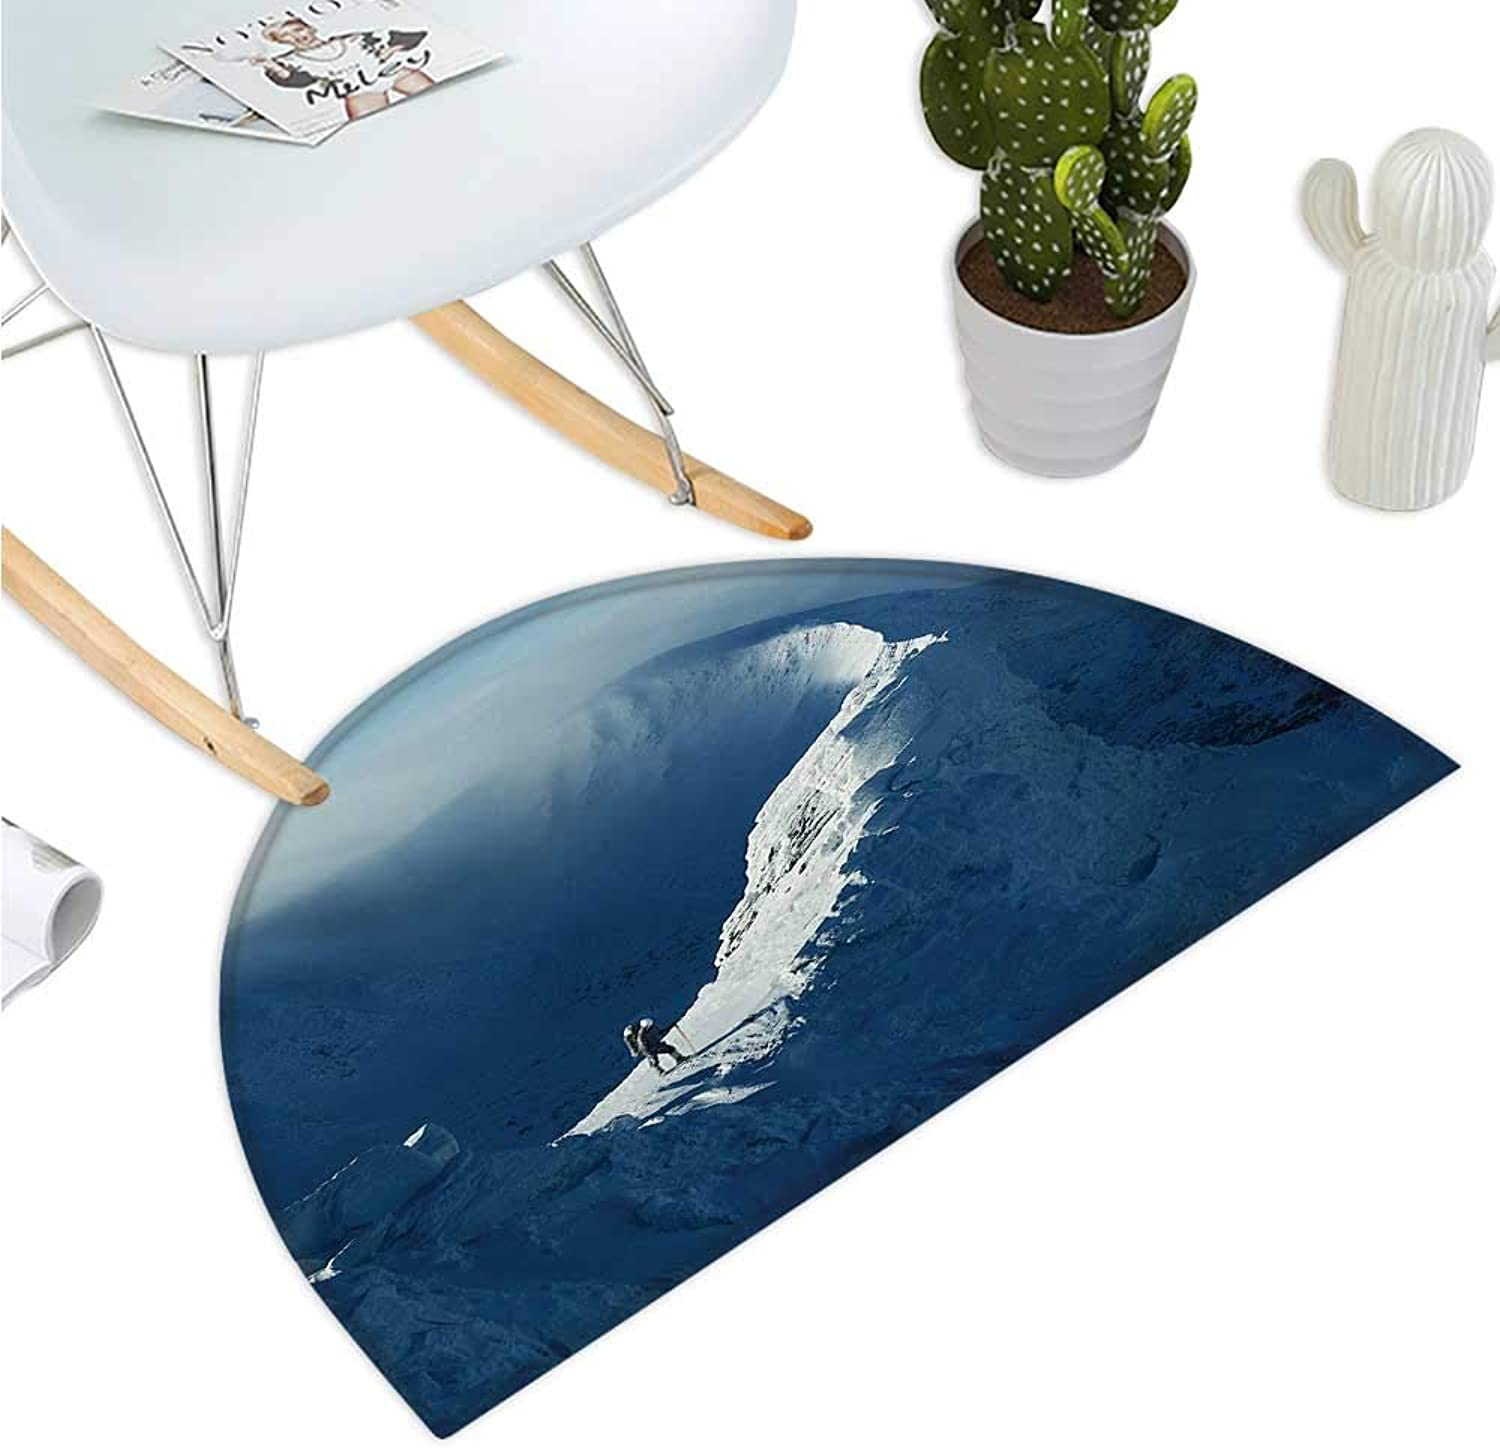 Nature Semicircle Doormat Sunny Day in The Mountains Tourist Standing on a Rock Adventurous Lifestyle Entry Door Mat H 43.3  xD 64.9  Slate bluee White